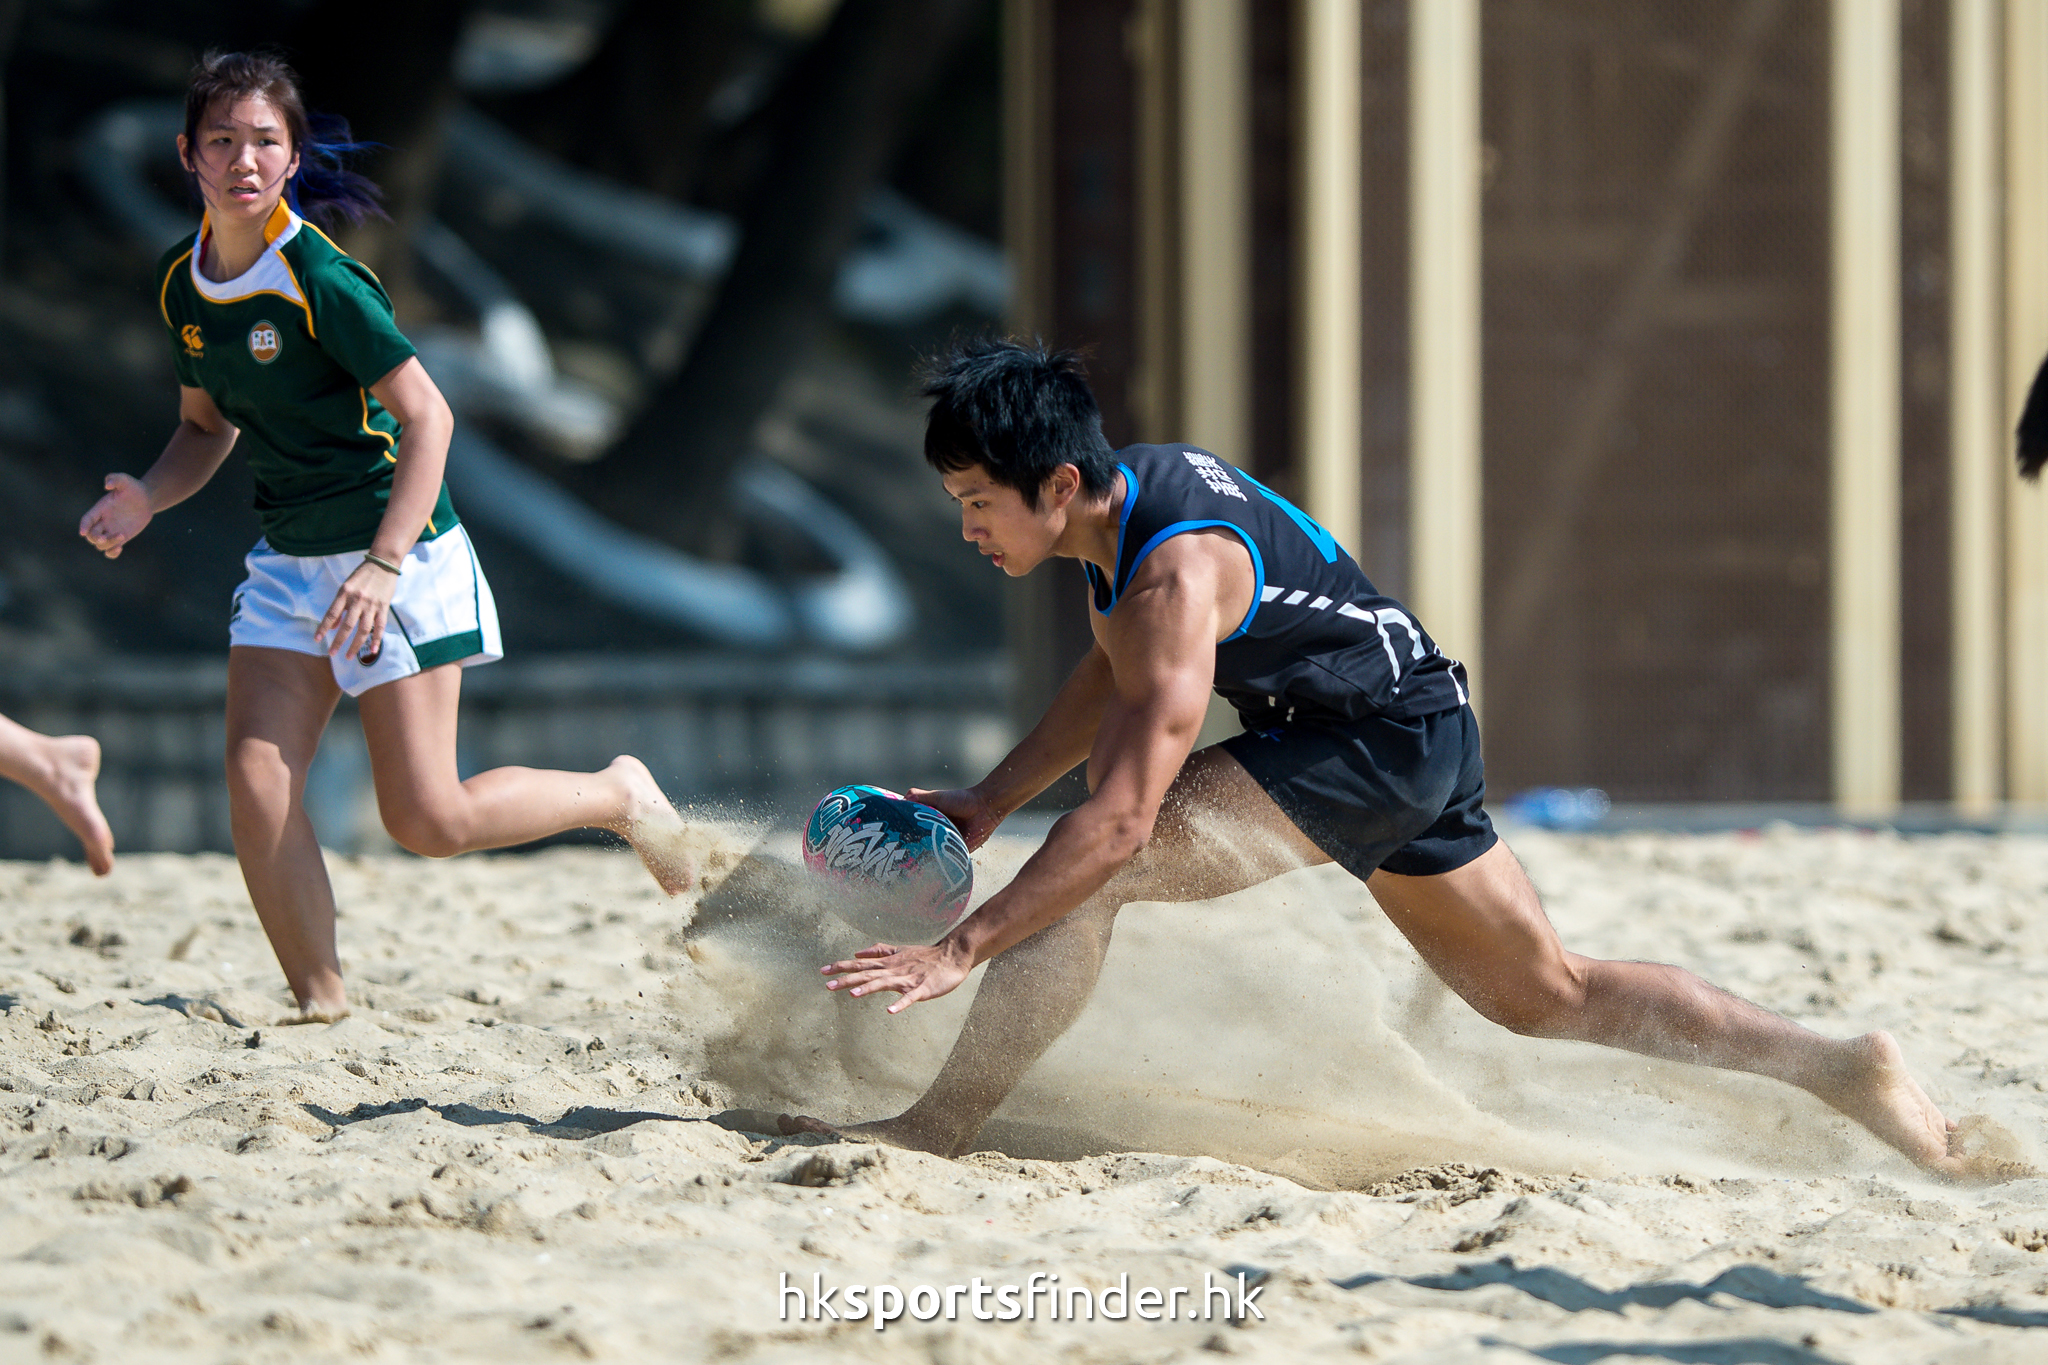 Her_GoldCoastTertiaryBeachRugby_16-11-12 13.10.33_000895.jpg